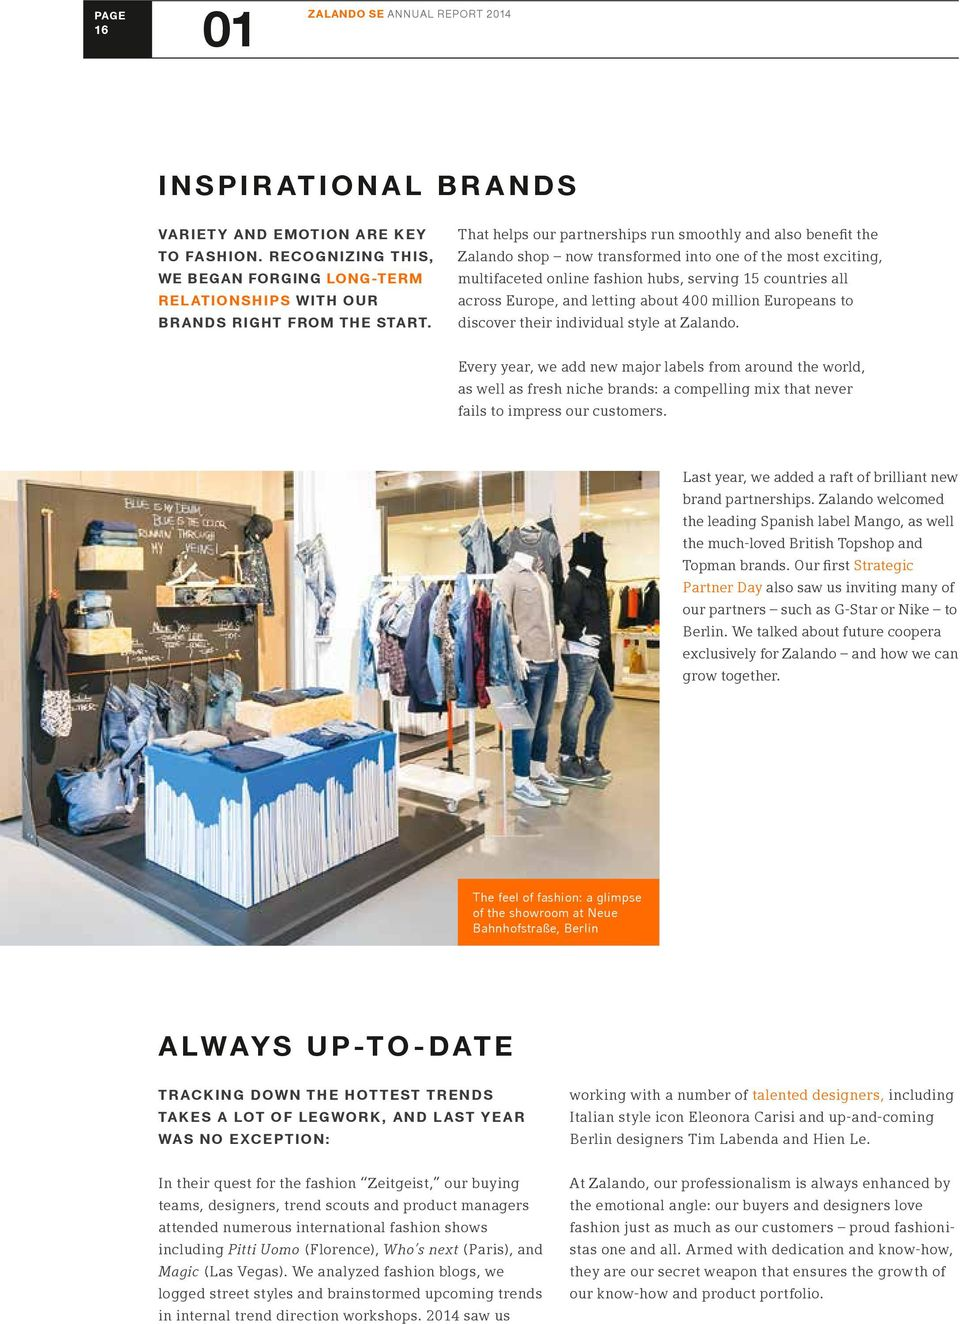 letting about 400 million Europeans to discover their individual style at Zalando.